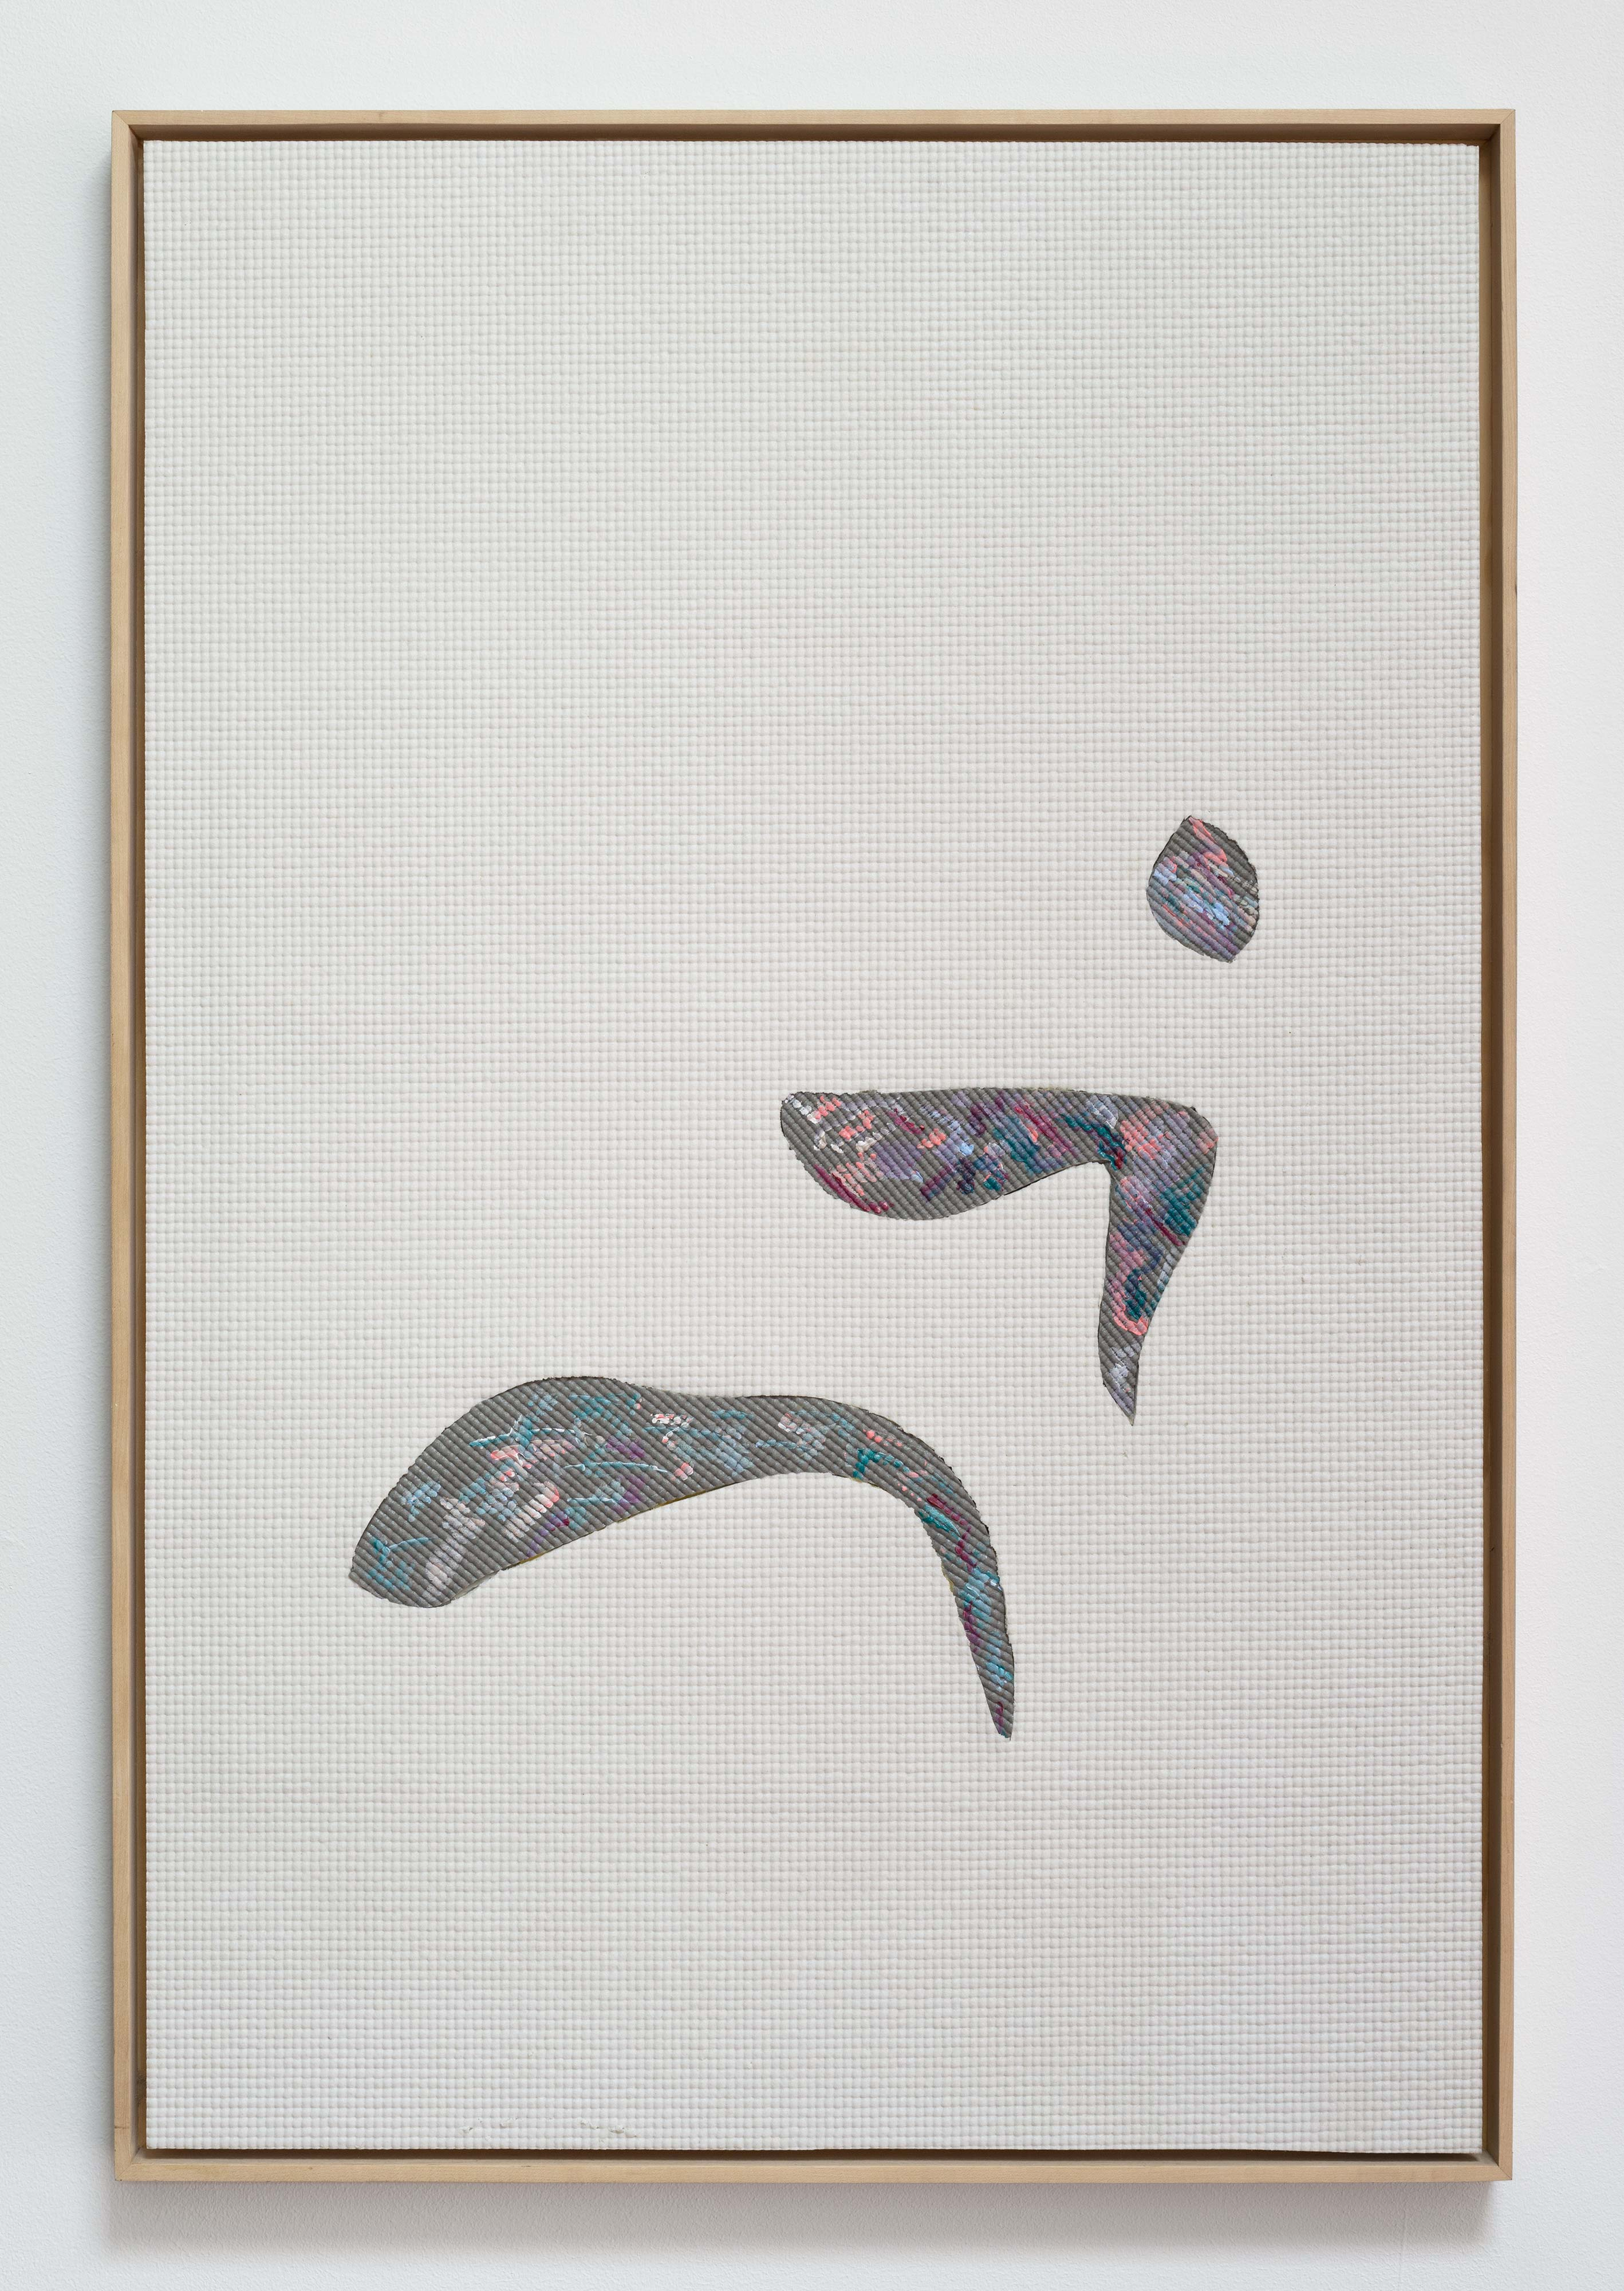 Alex Ebstein<br>Small Gestures<br>2013<br>PVC Yoga Mats and Acrylic<br>36 x 24 in (91 x 61 cm)